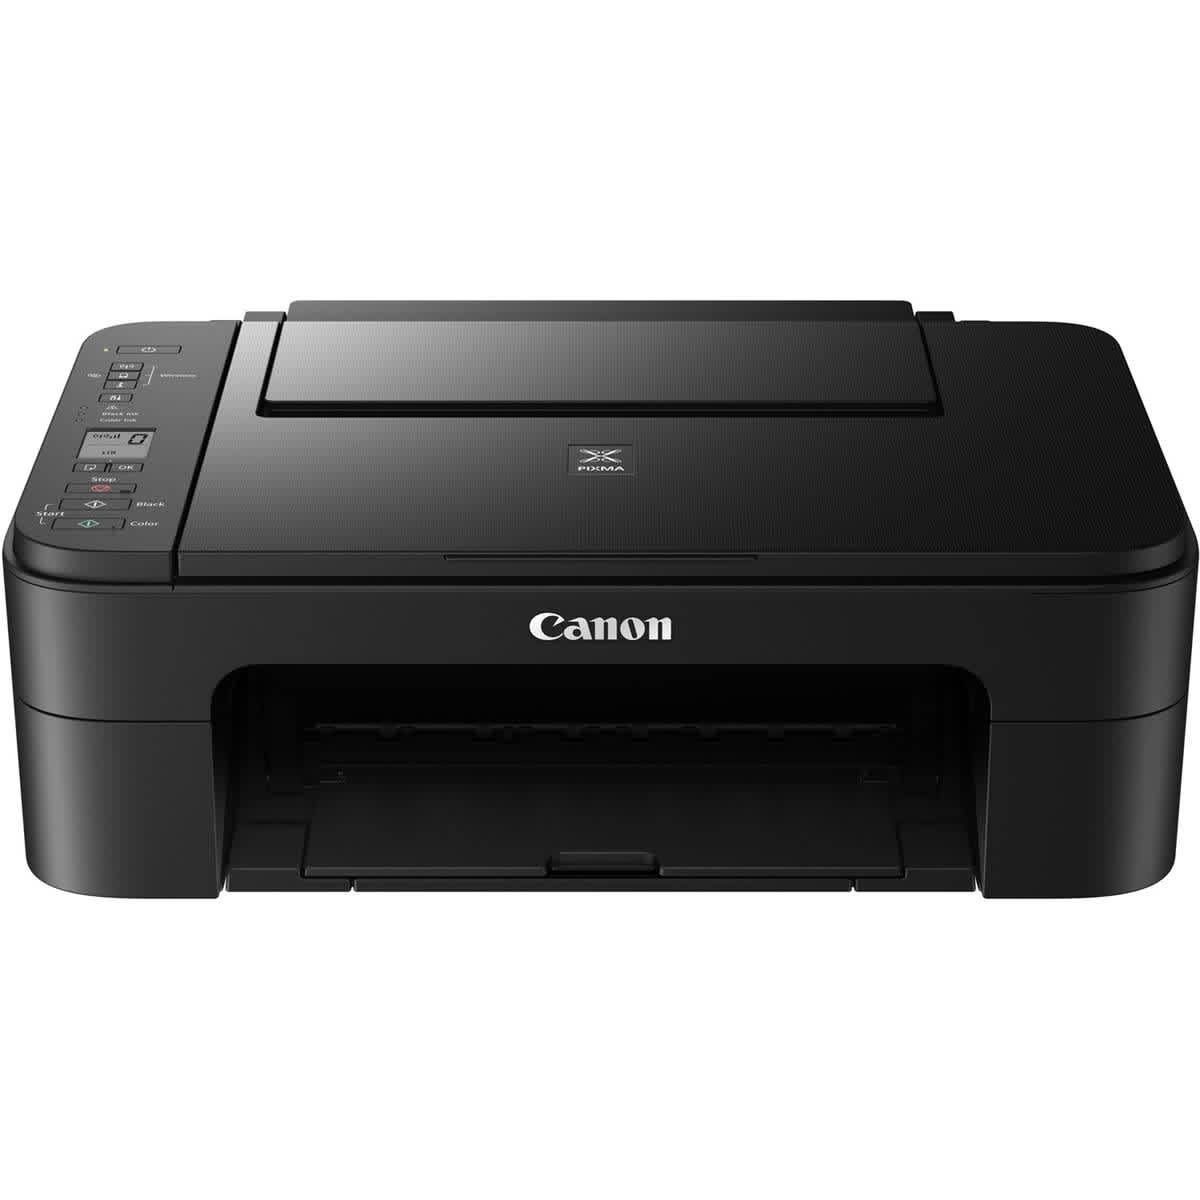 Canon Pixma TS3320 Wireless All-In-One Inkjet Printer